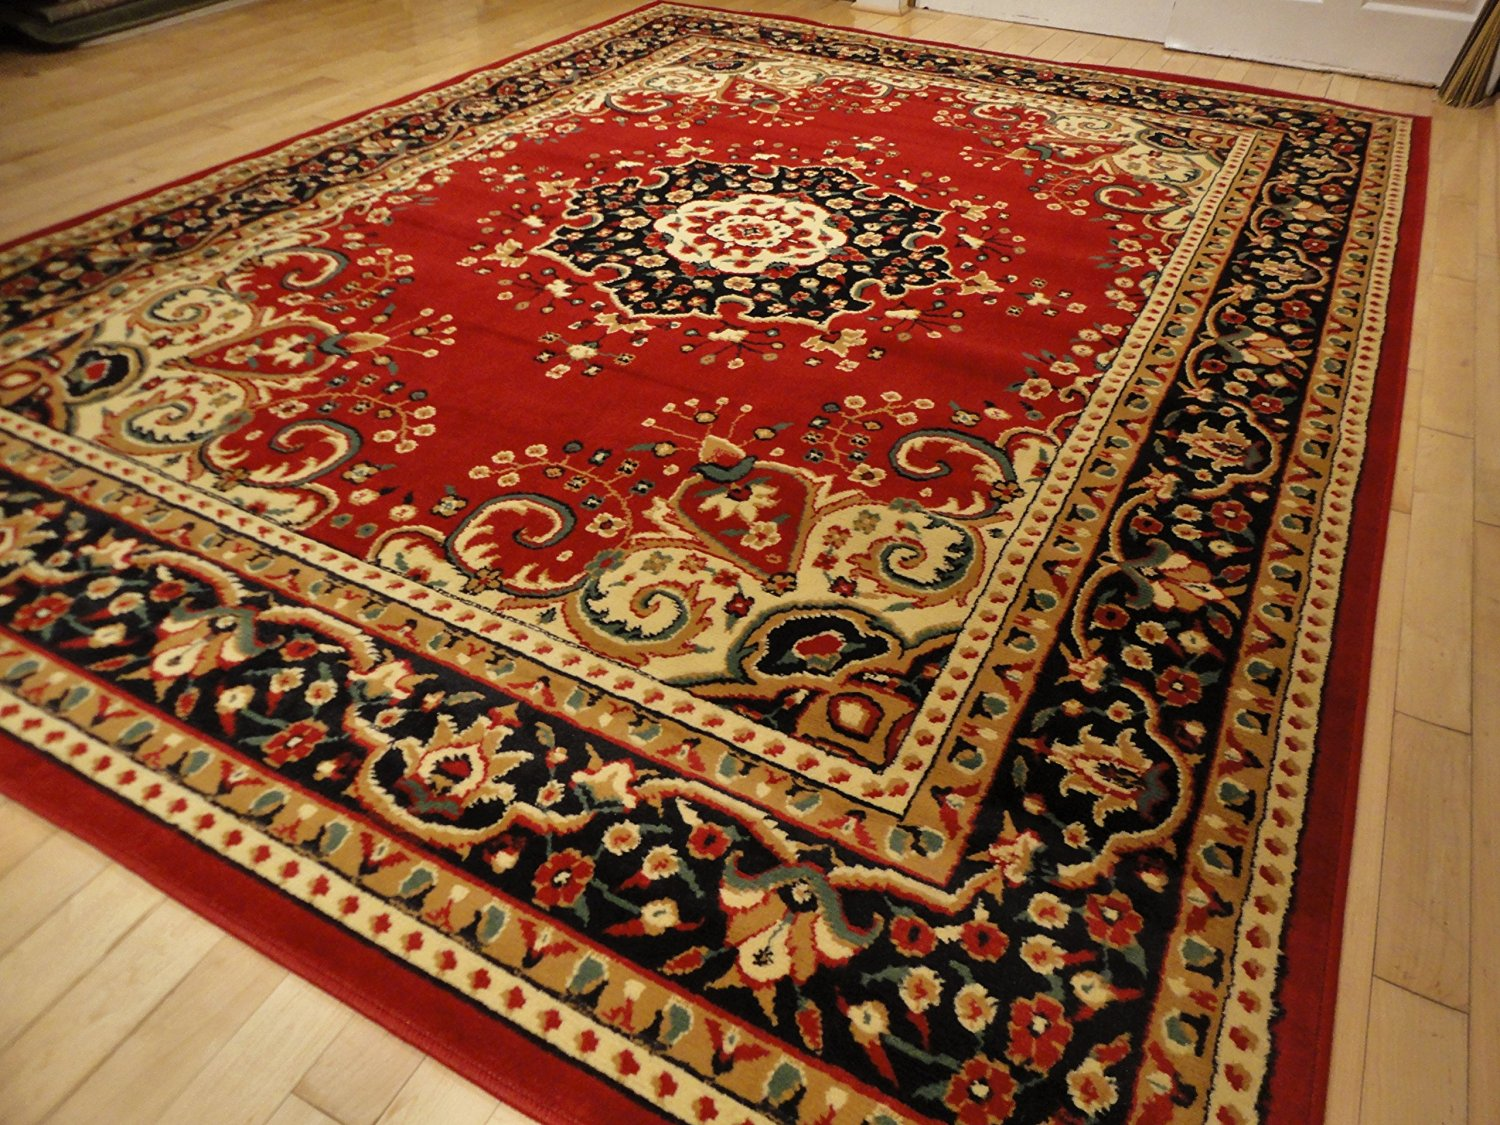 Cheap Hallway Runner Rugs Find Hallway Runner Rugs Deals On Line At